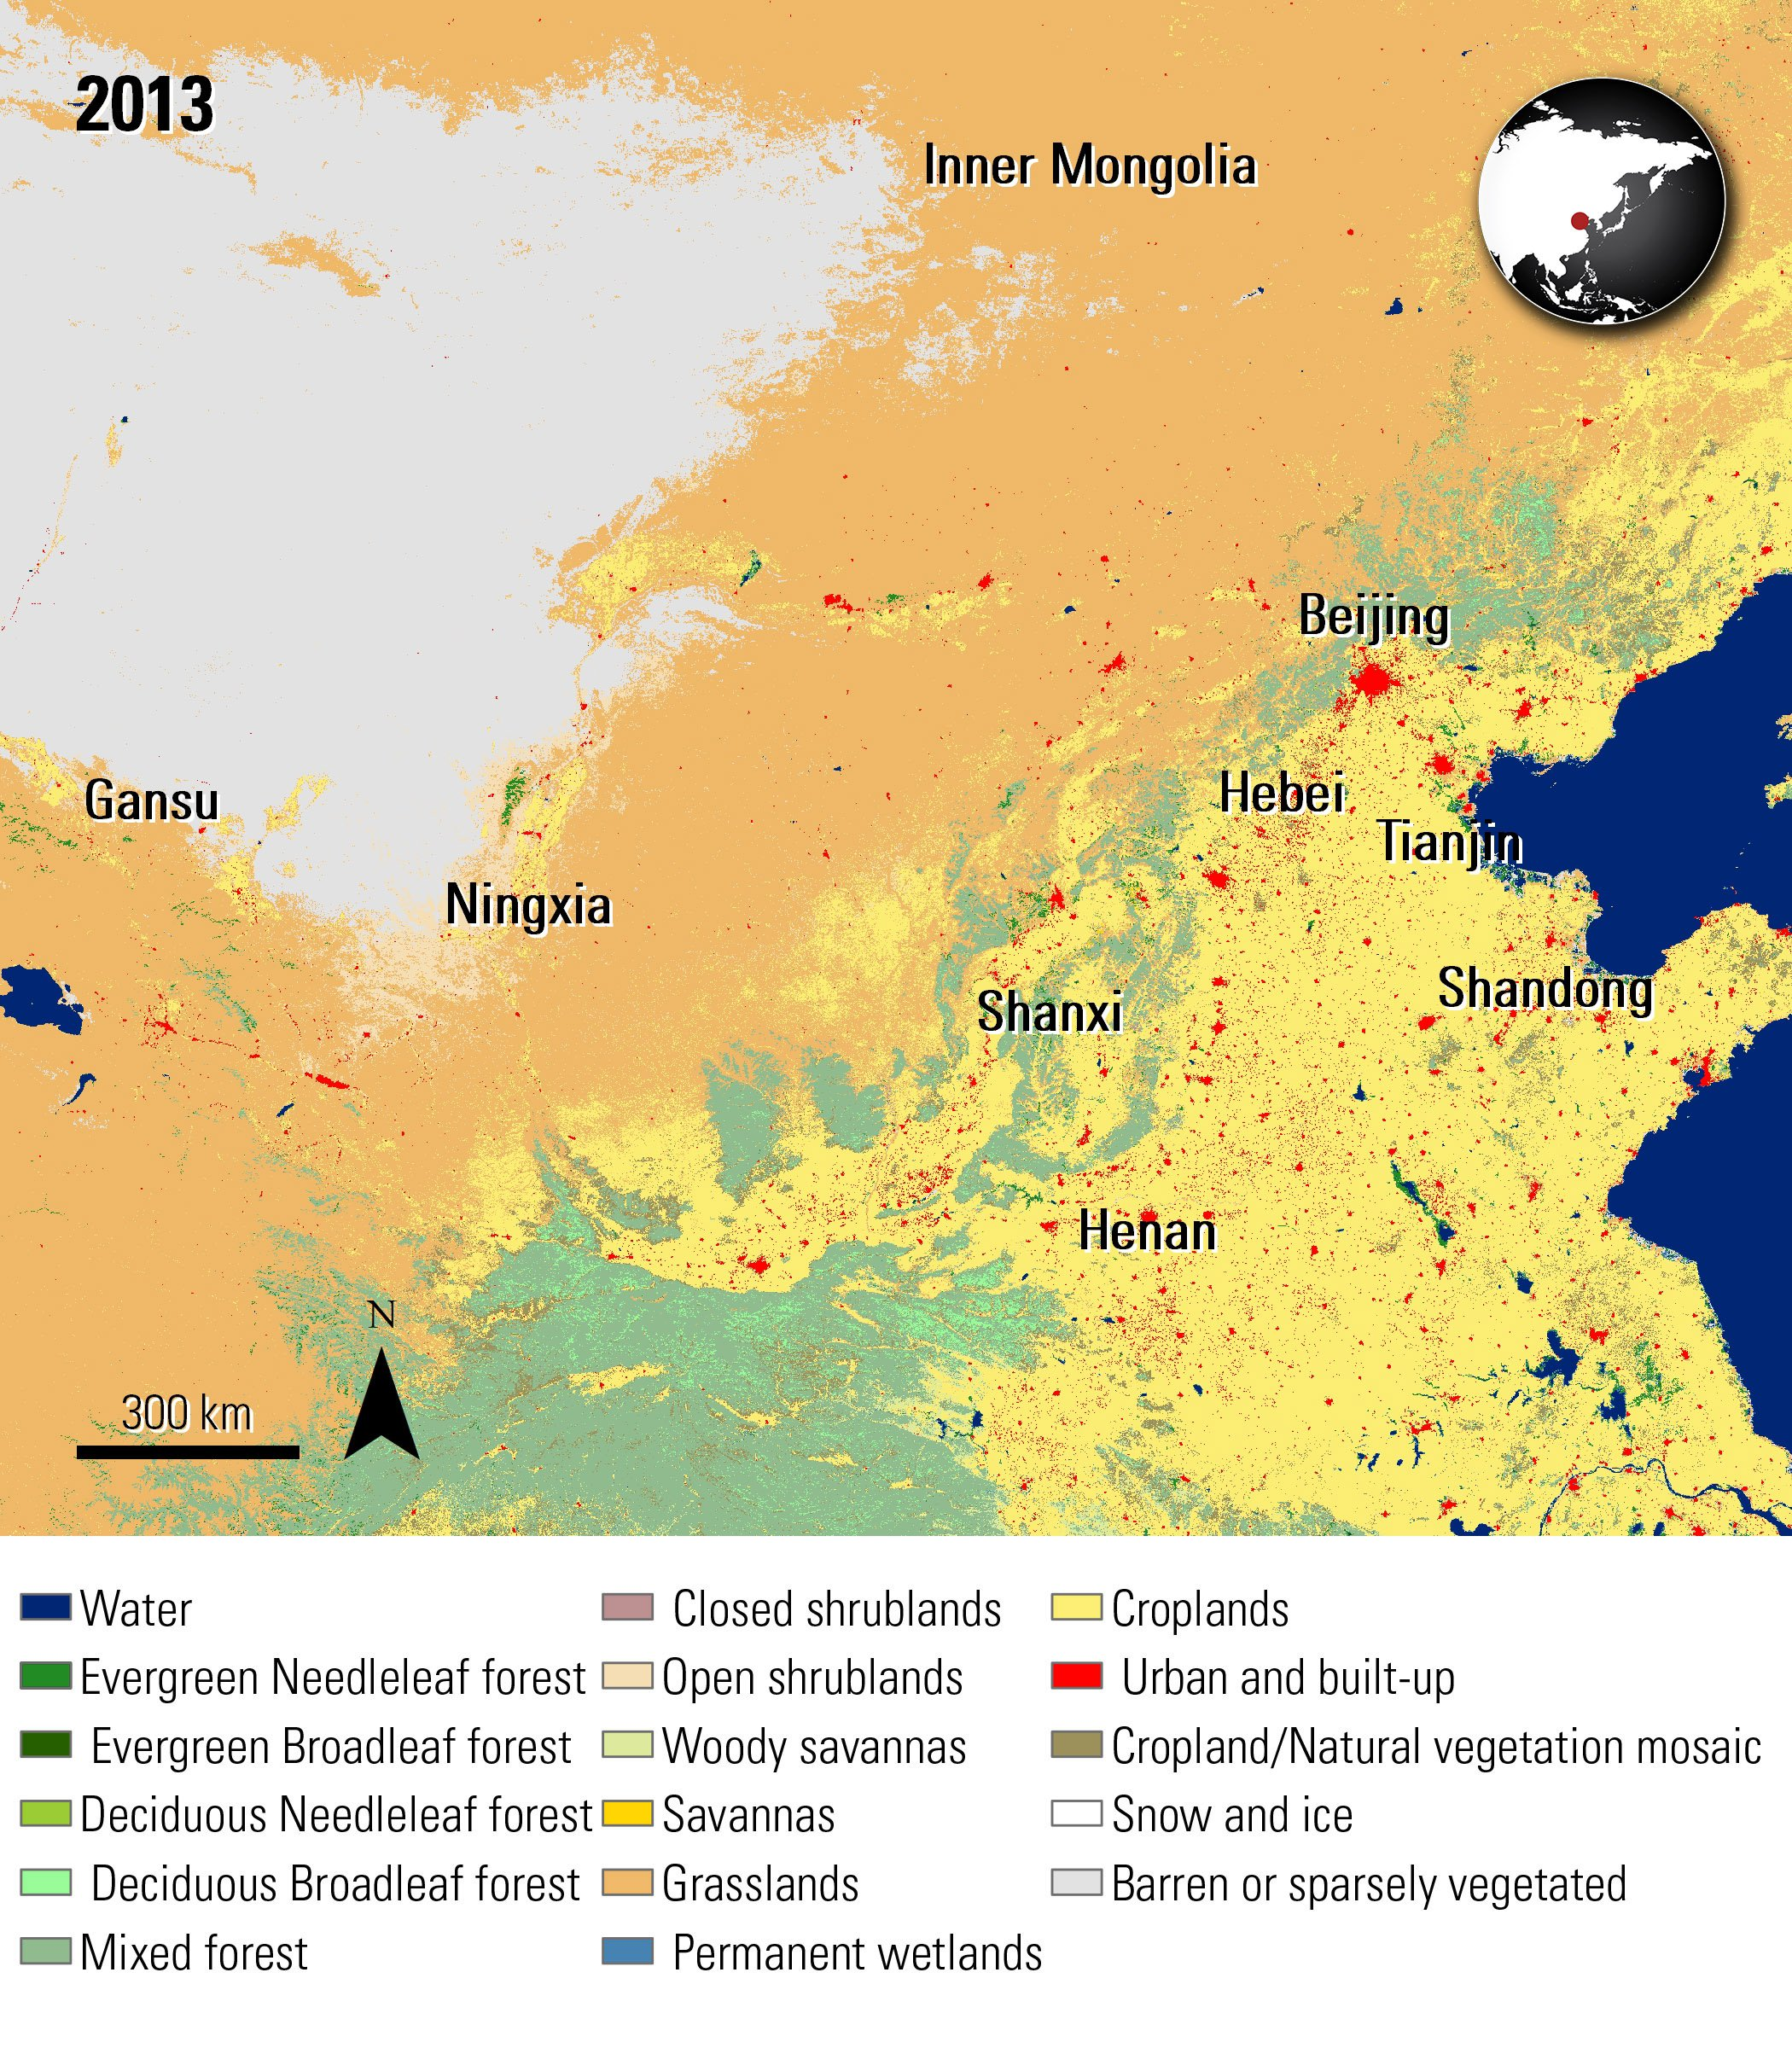 Combined MODIS Land Cover data over part of China, acquired in 2013.